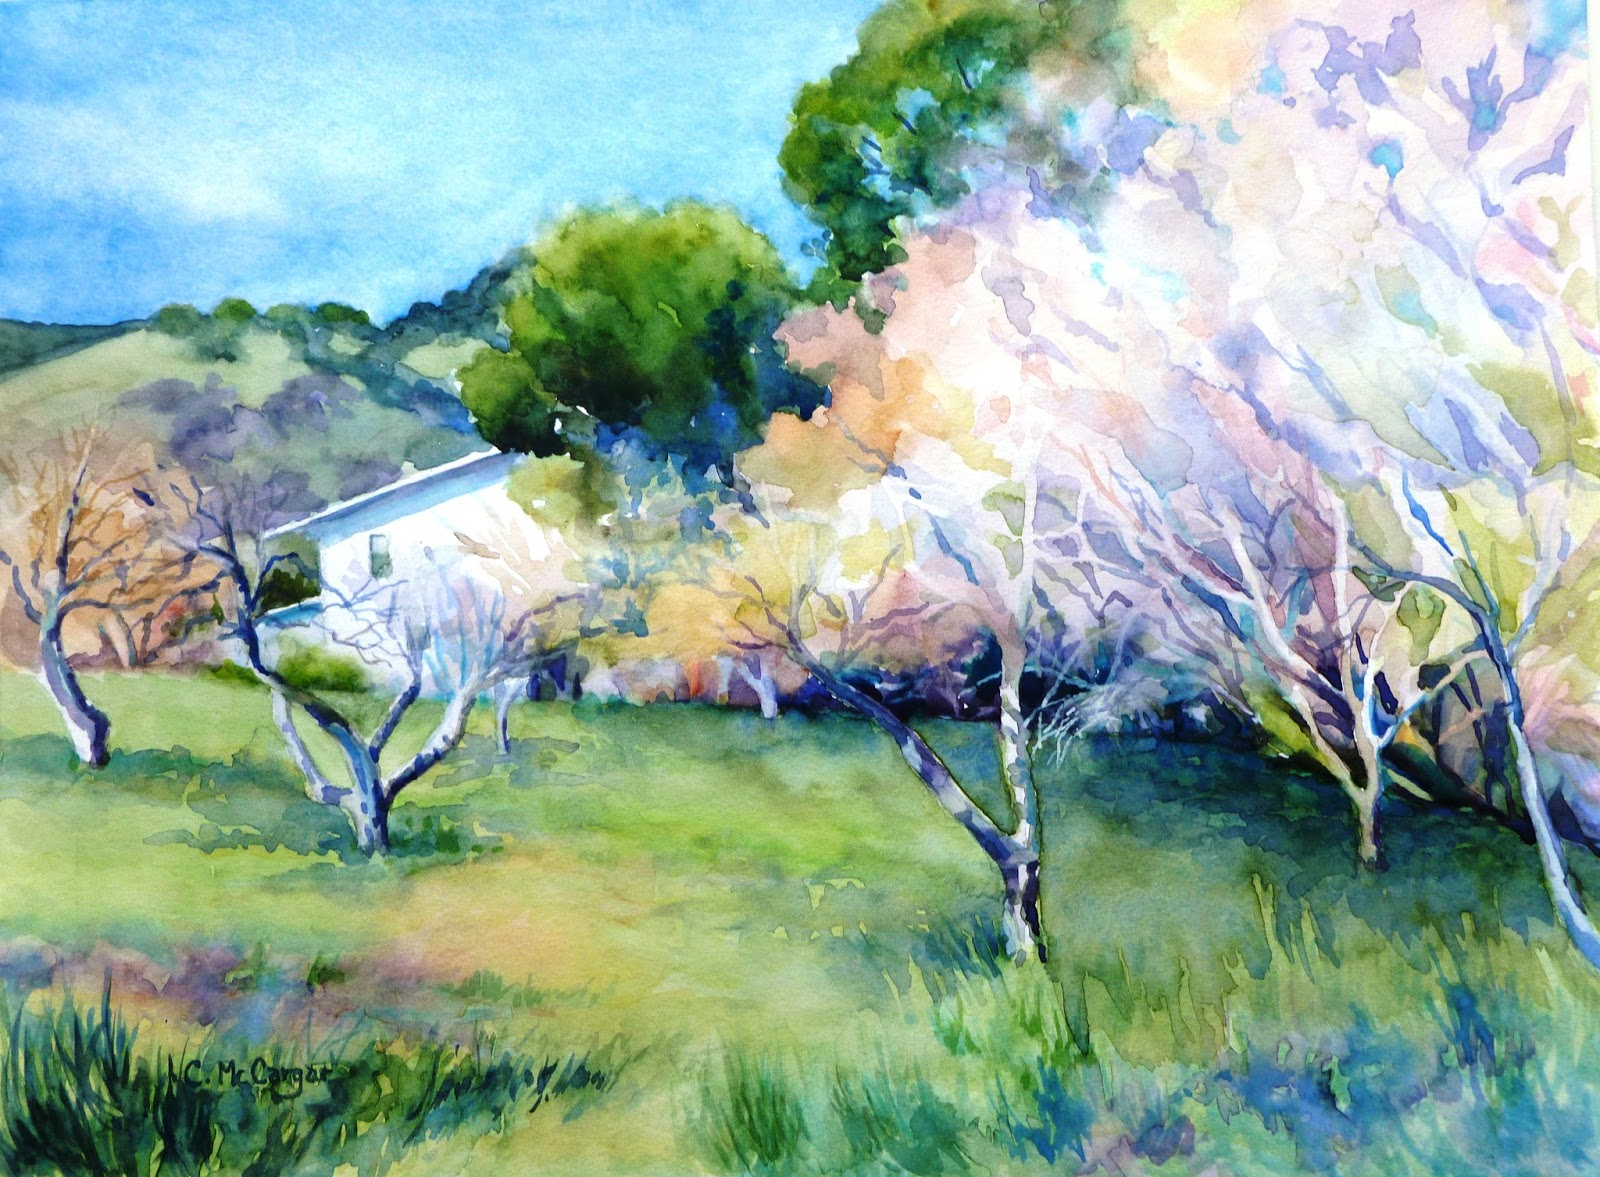 Catherine McCargar Watercolor Painter